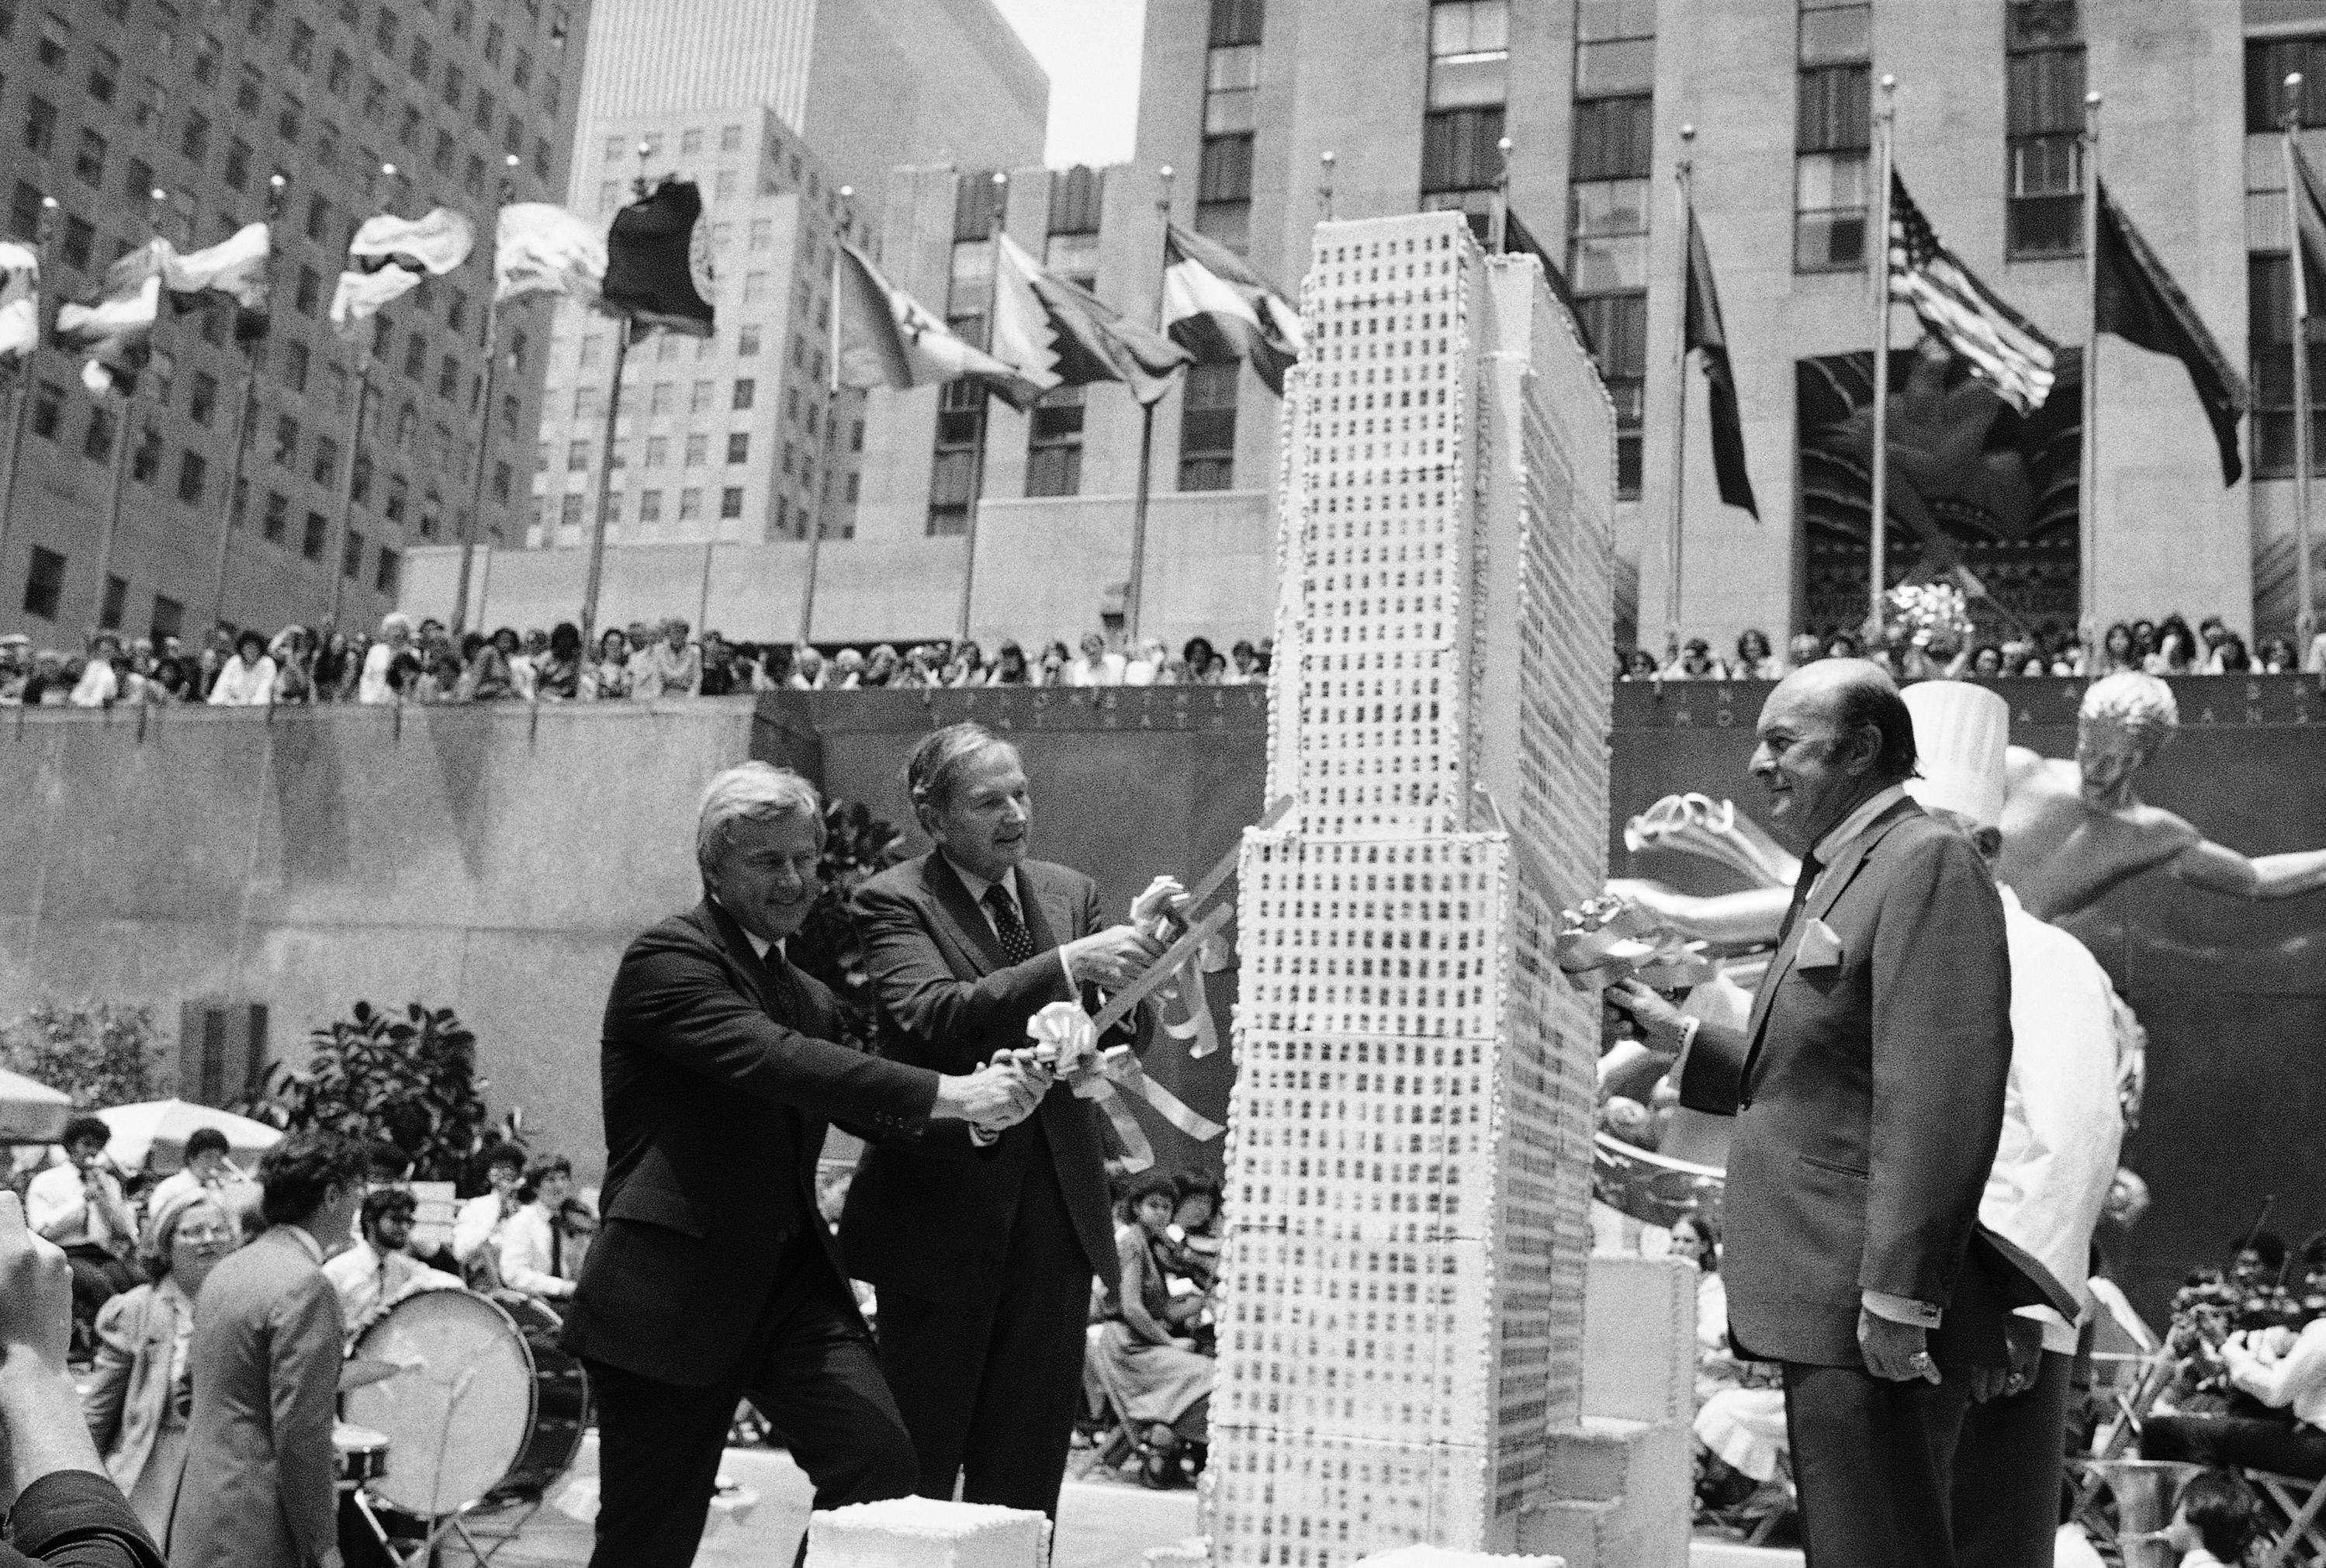 Obit David Rockefeller-3 FILE - In this June 16, 1982, file photo, David Rockefeller, second left, Rockefeller Center chairman and Center President Richard H. Voell, left, and New York City Board of Education President Joseph Barker, right, begin to slice up an eight-foot-tall culinary replica of Rockefeller Center in New York. The occasion marked the 50th birthday celebration of the midtown building complex. David Rockefeller, the billionaire philanthropist who was the last of his generation in the famously philanthropic Rockefeller family died, Monday, March 20, 2017, according to a family spokesman. (AP Photo/Ray Howard, File)